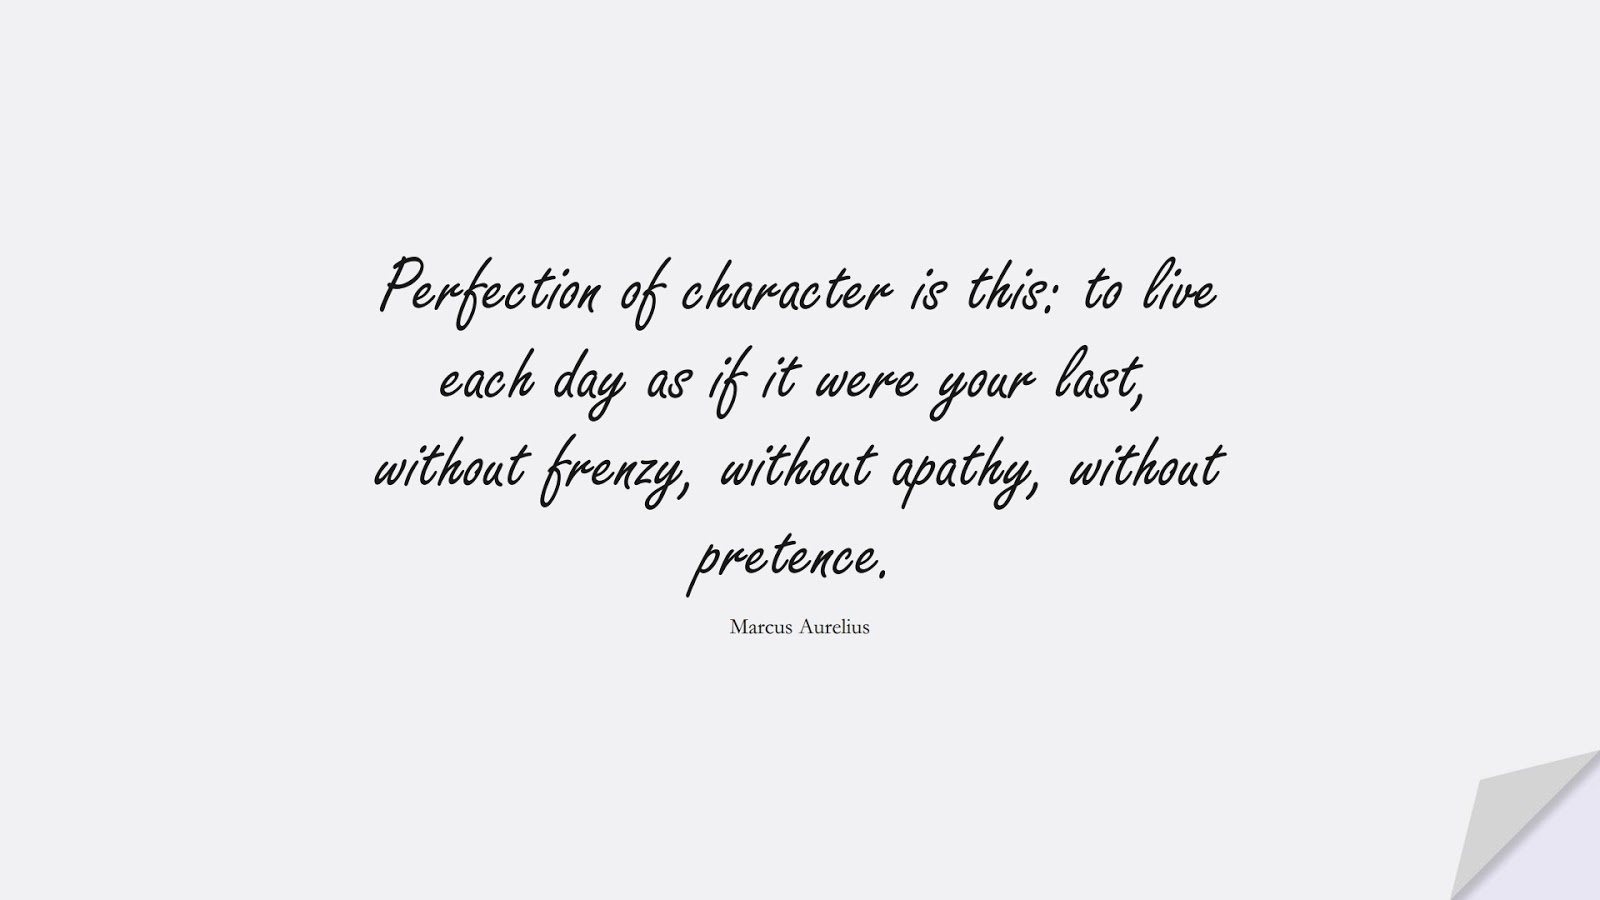 Perfection of character is this: to live each day as if it were your last, without frenzy, without apathy, without pretence. (Marcus Aurelius);  #MarcusAureliusQuotes